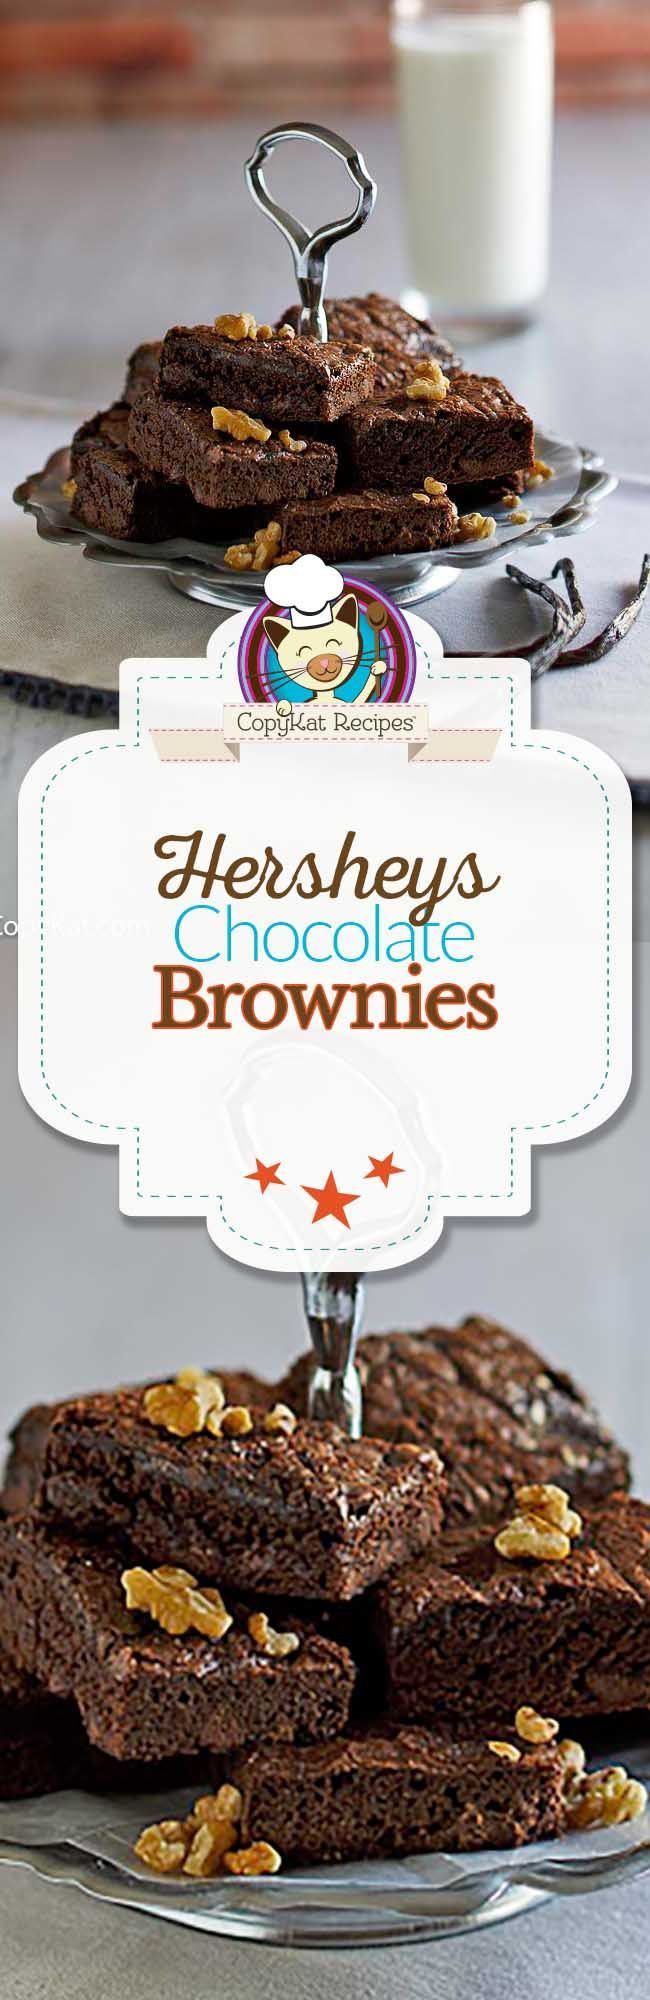 You can make Hershey chocolate brownies at home with our recipe. These are so easy to make, and you can't bet these homemade brownies.